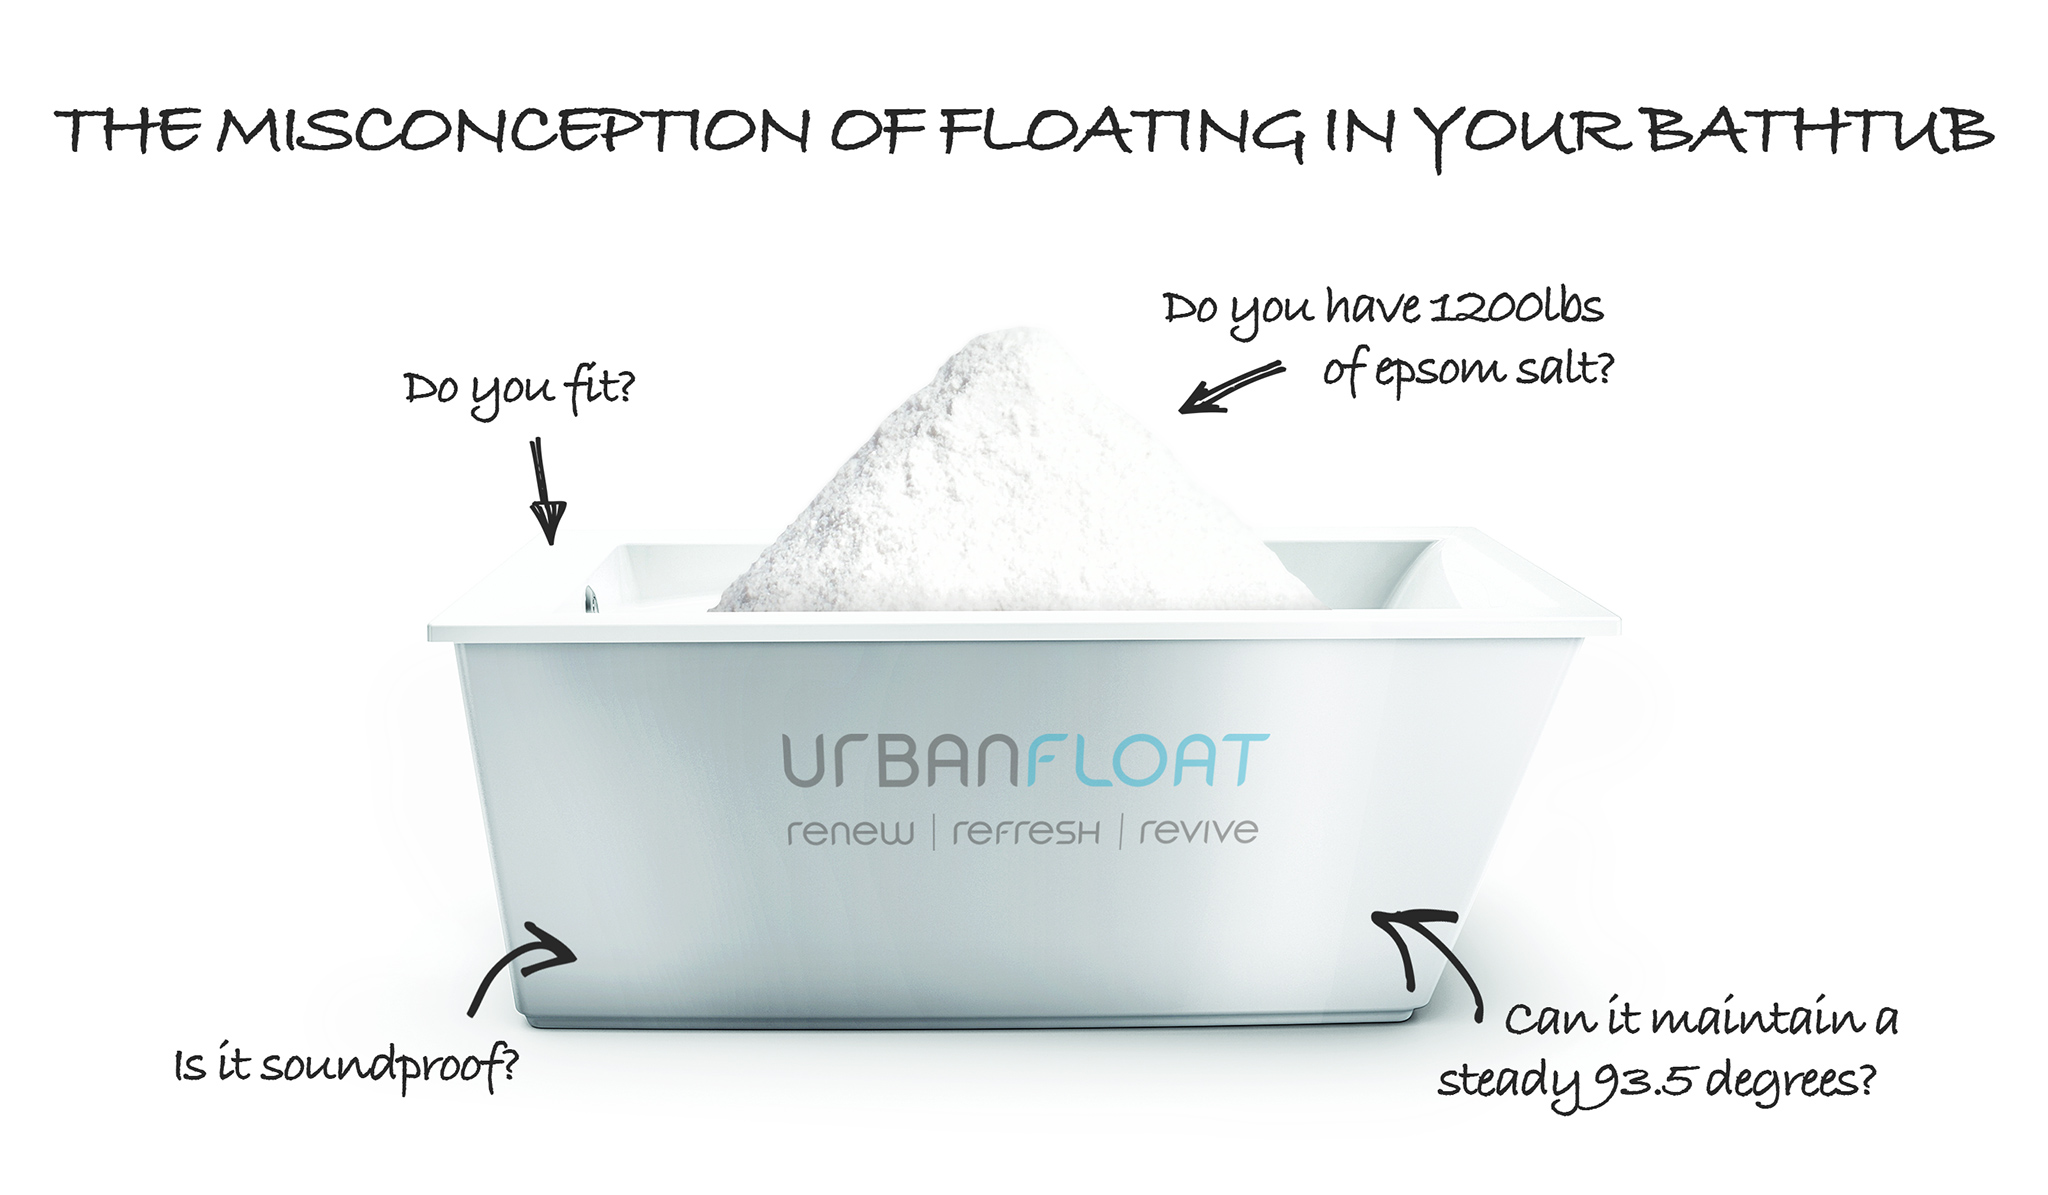 UrbanFloat-Floating-Misconception.jpg